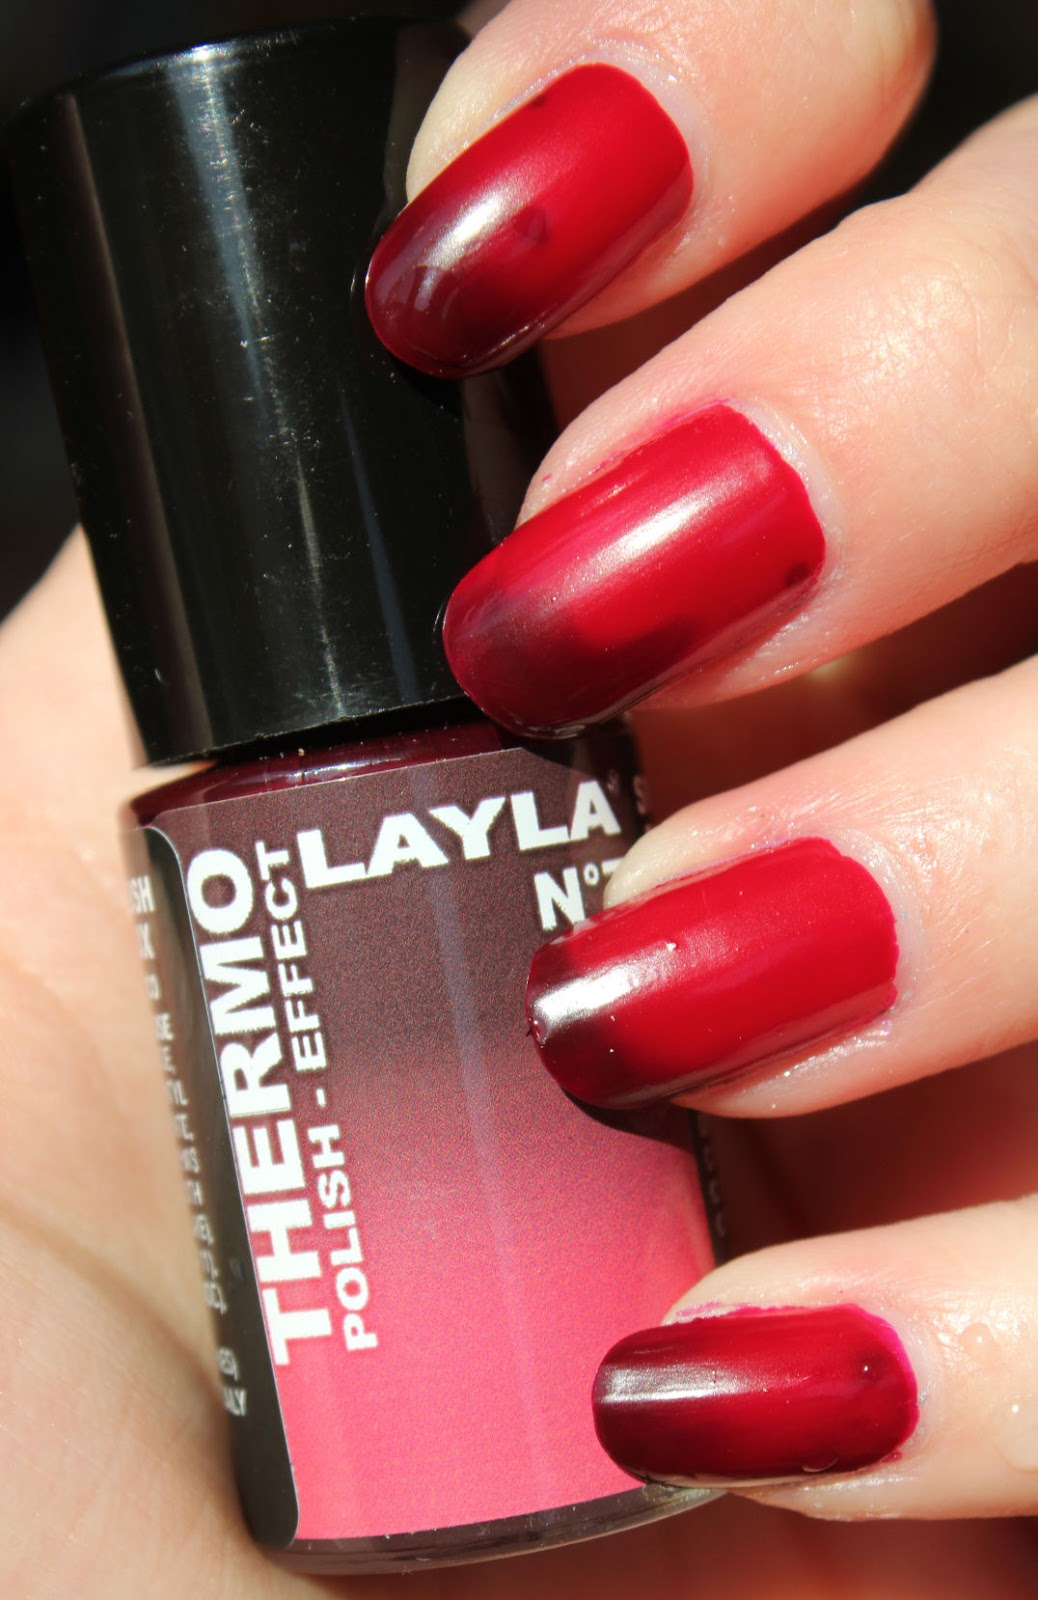 http://lacquediction.blogspot.de/2014/03/layla-thermo-polish-nr-7.html